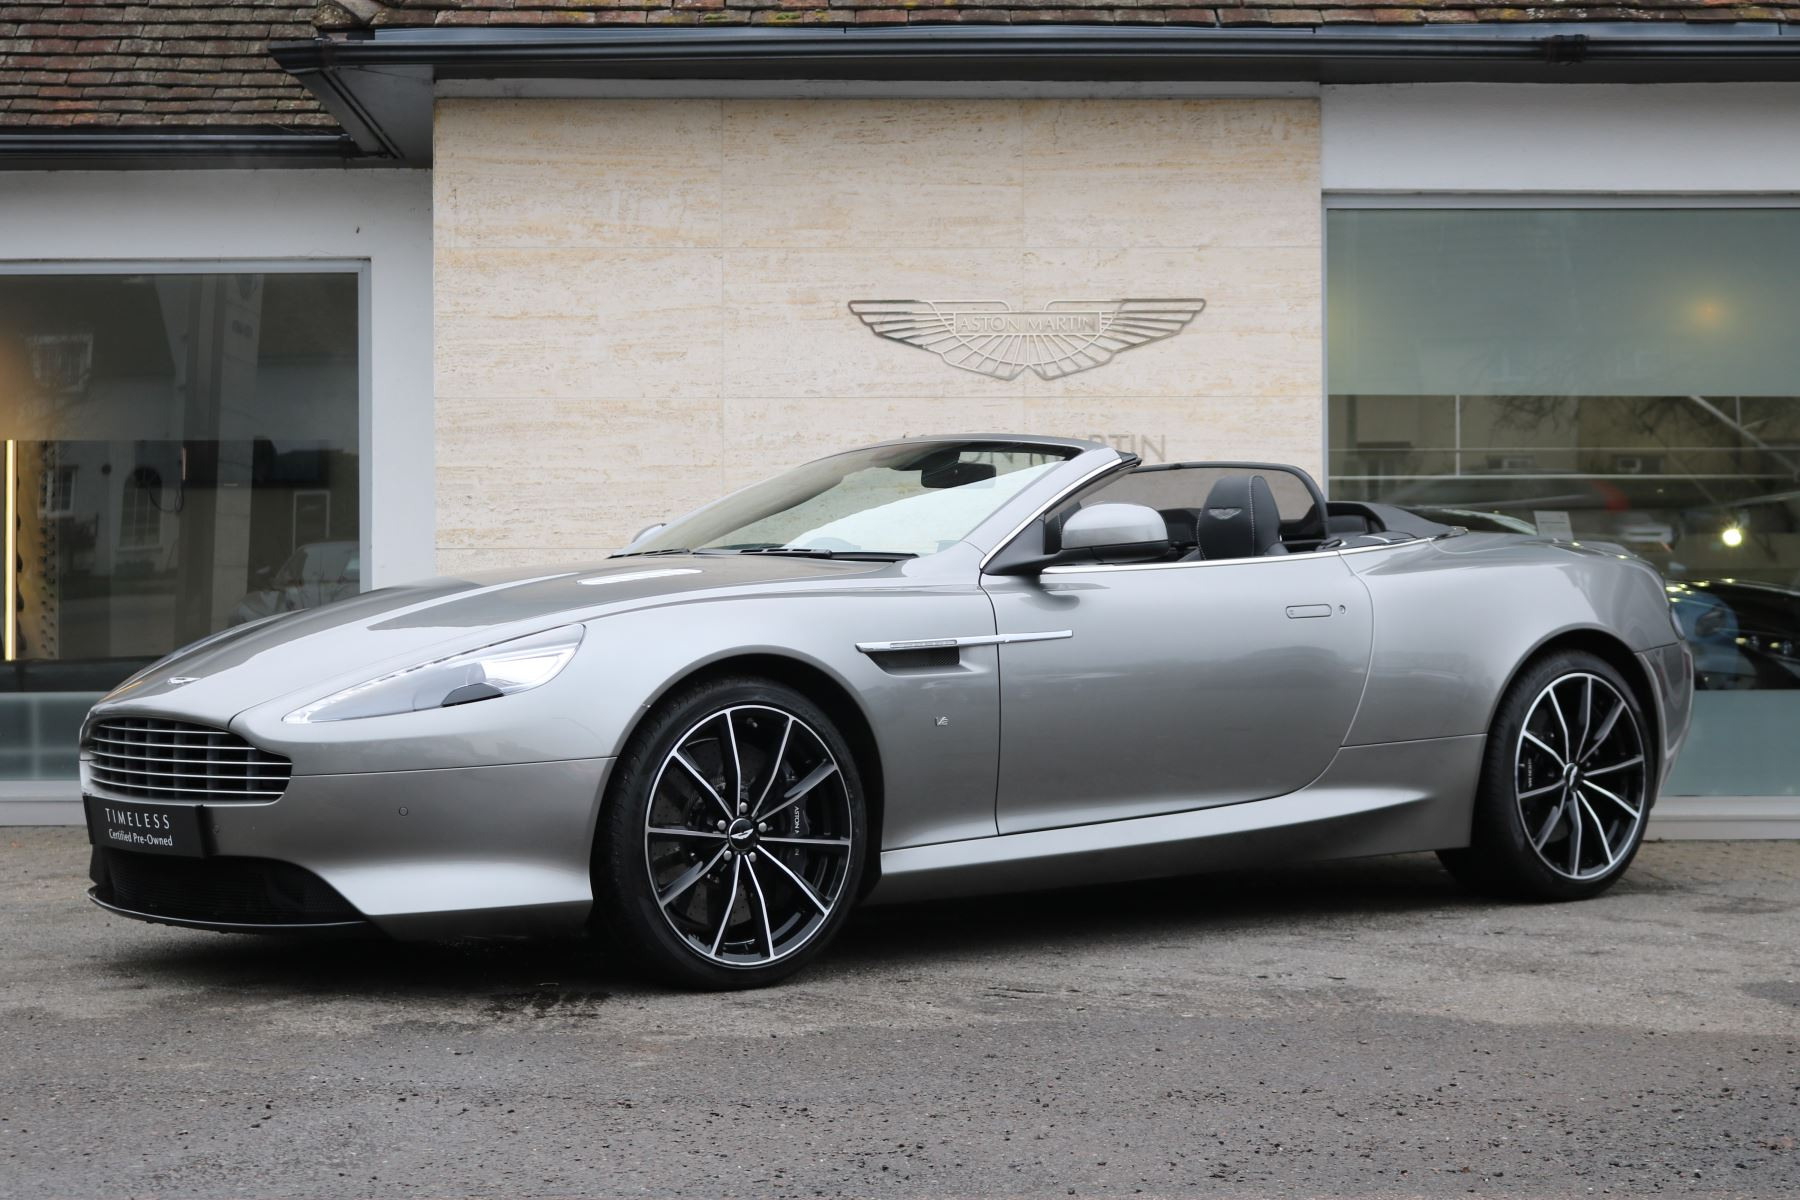 Aston Martin DB9 V12 GT 2dr Volante Touchtronic 5.9 Automatic Convertible (2017) image